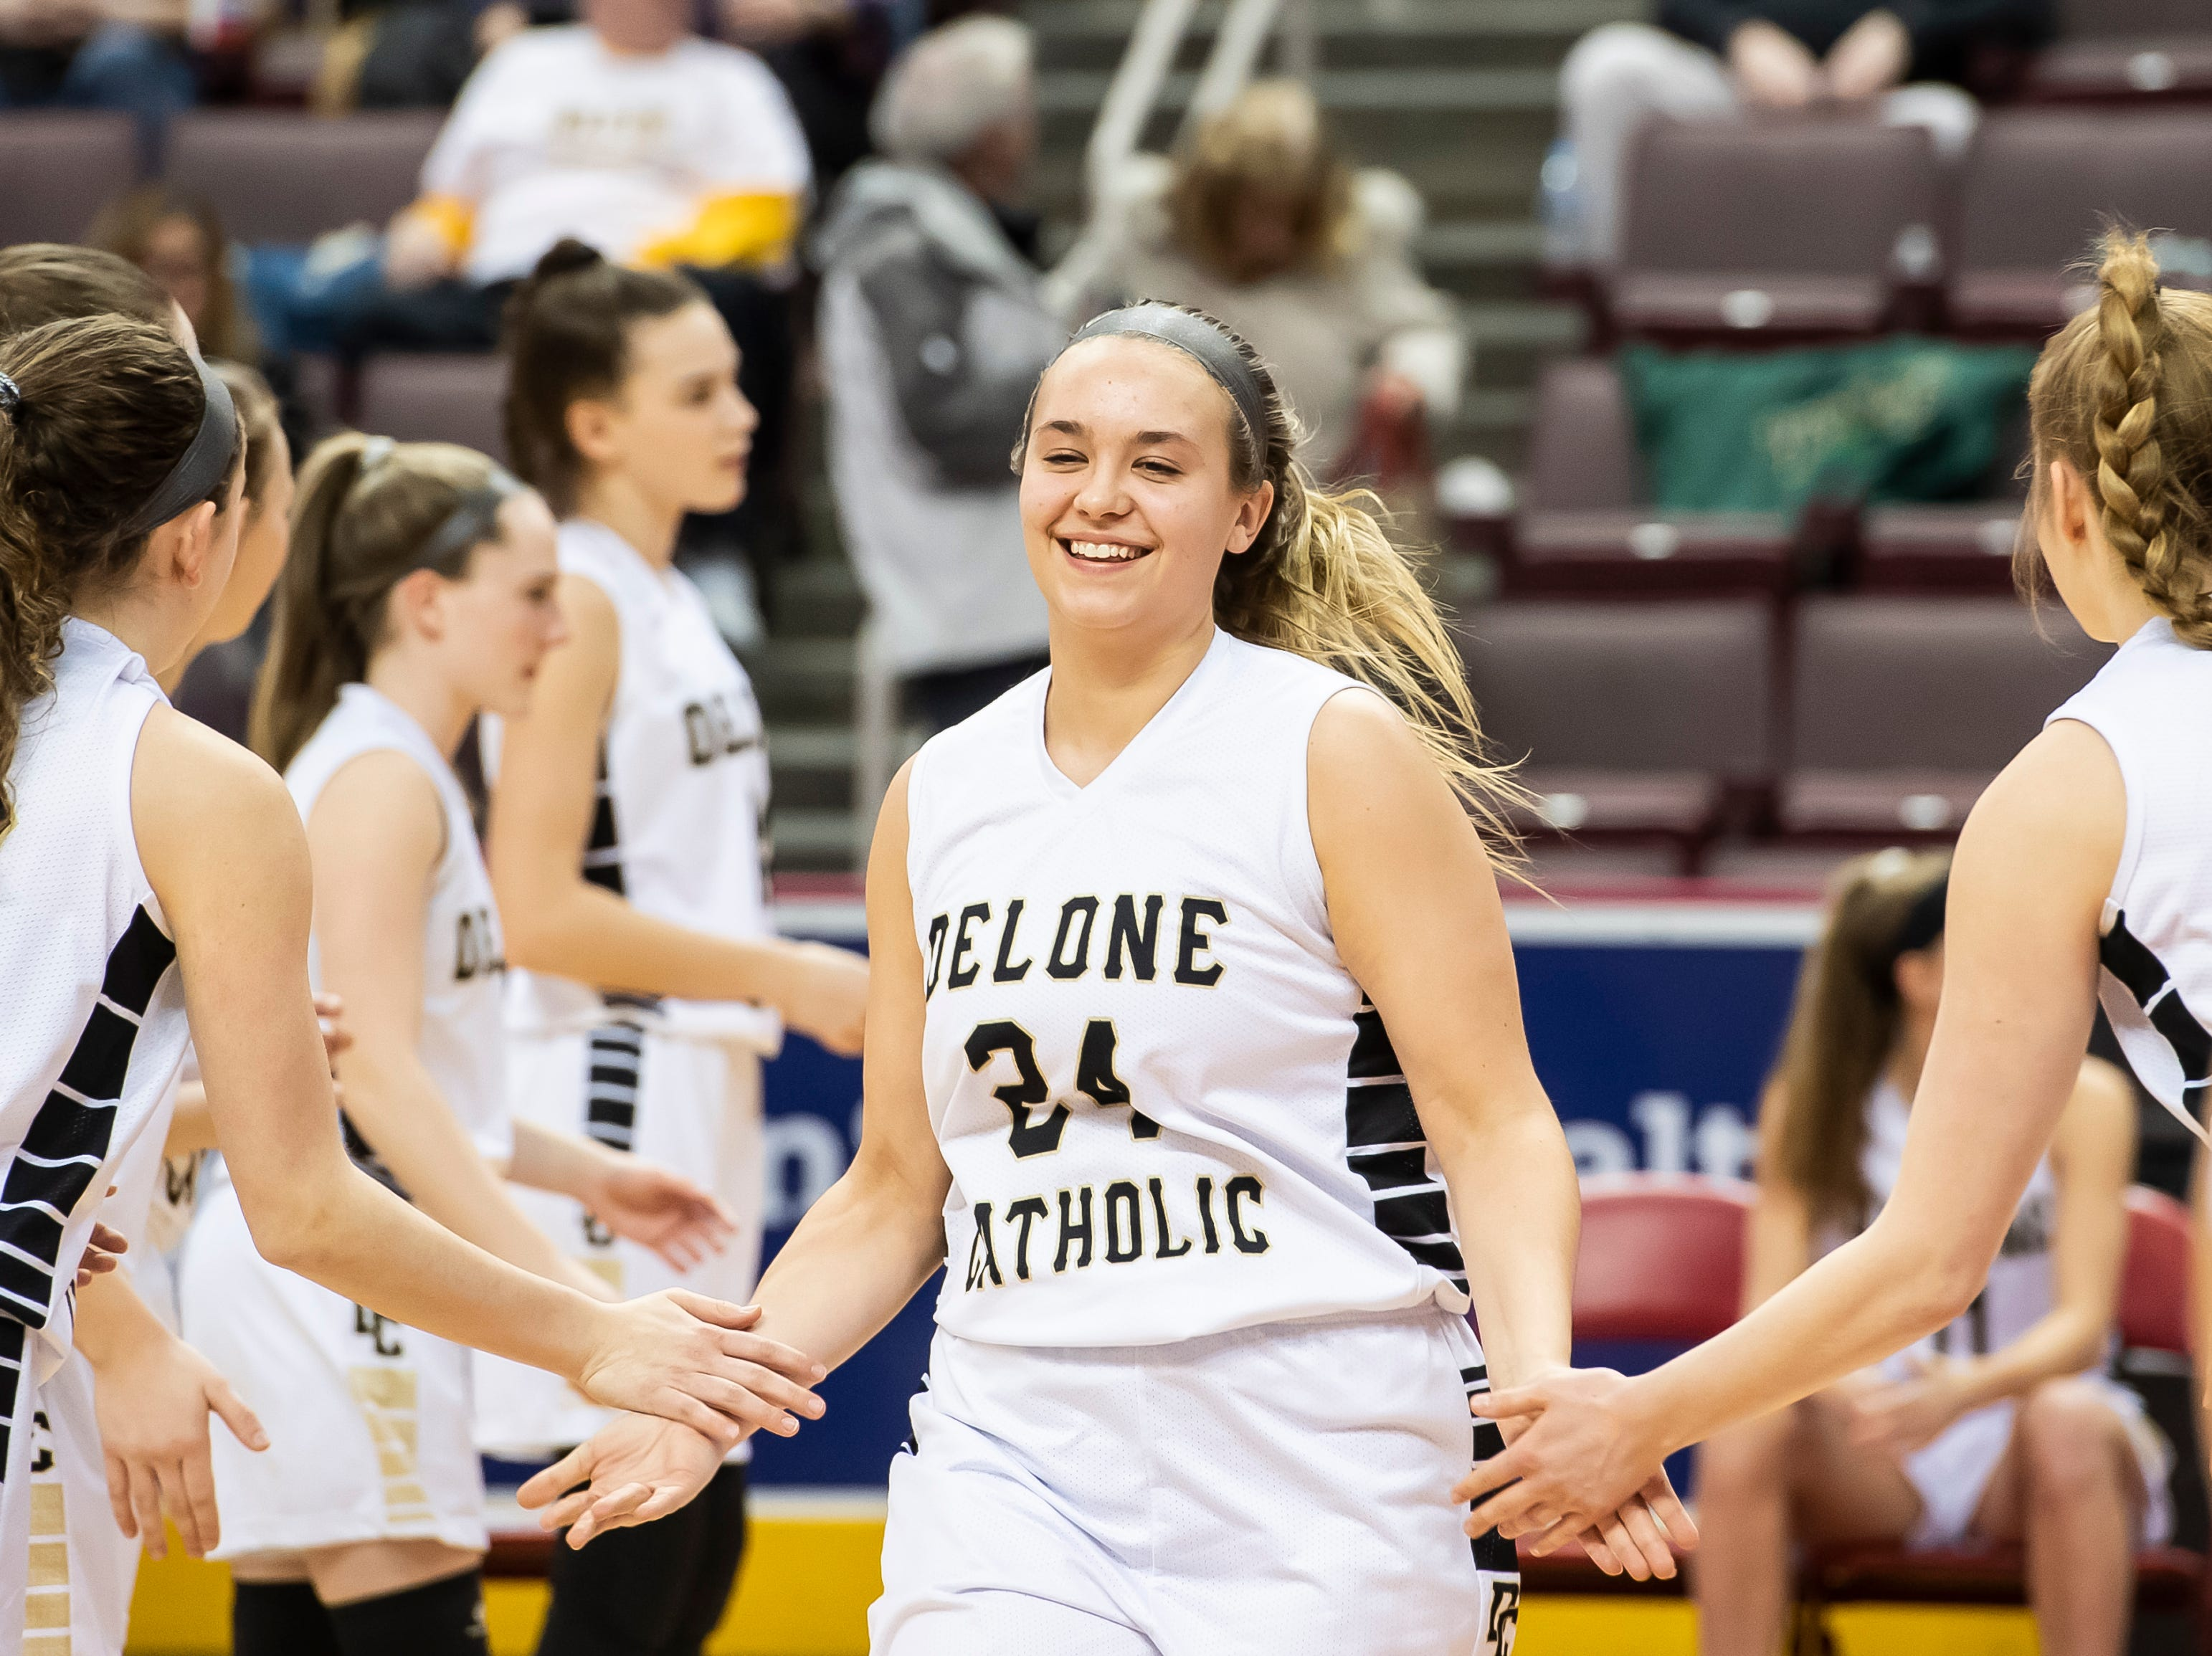 Delone Catholic's Colleen Anderson is introduced during the starting lineups before the District 3 3A girls championship game against Trinity at the Giant Center in Hershey Wednesday, Feb. 27, 2019. The Squirettes fell 44-33.